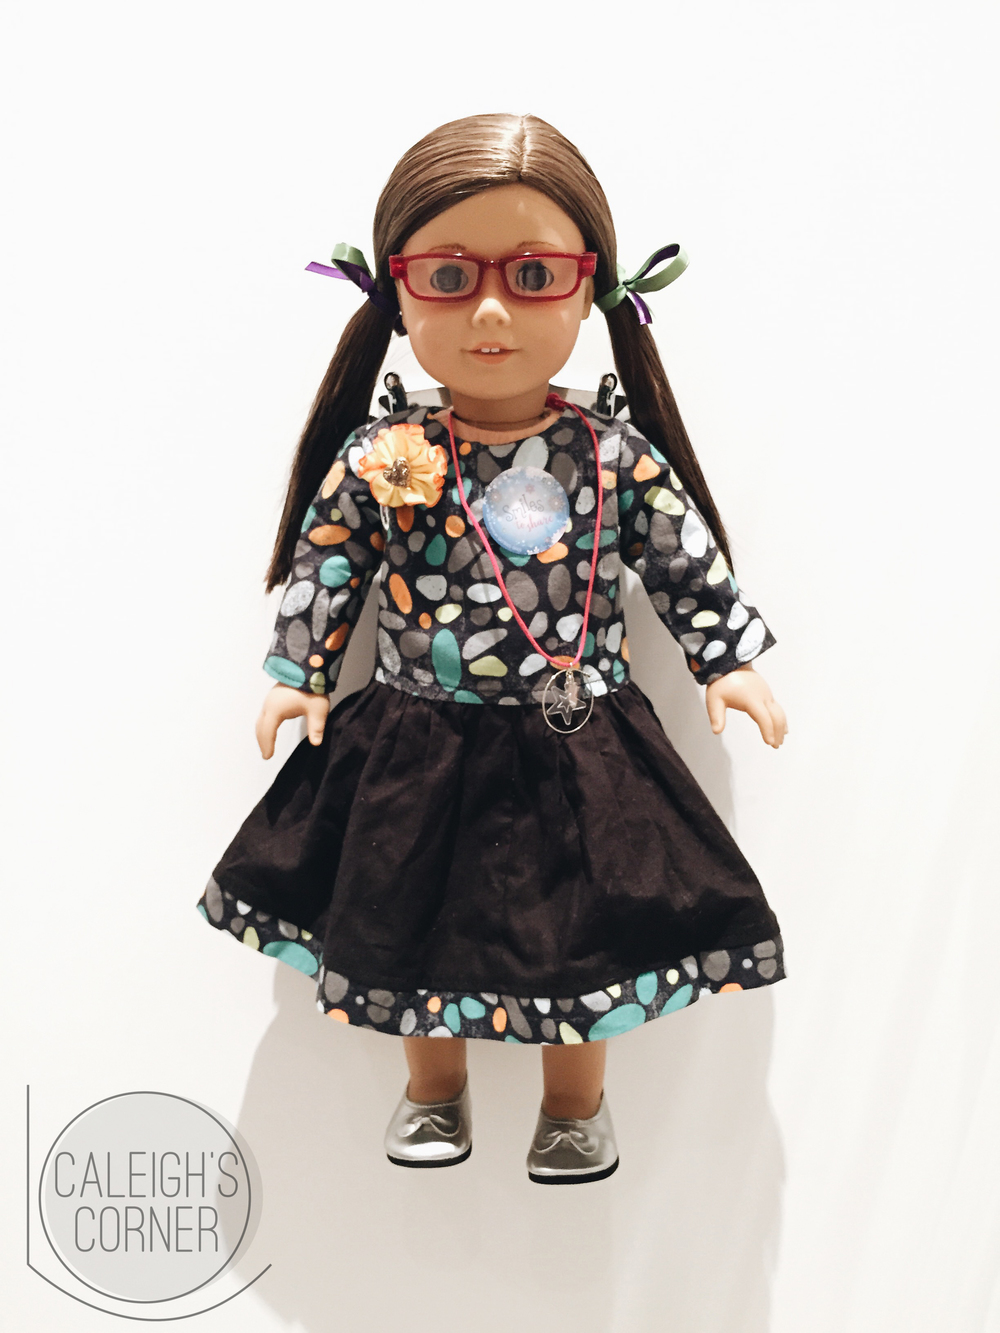 American Girl via Caleigh's Corner